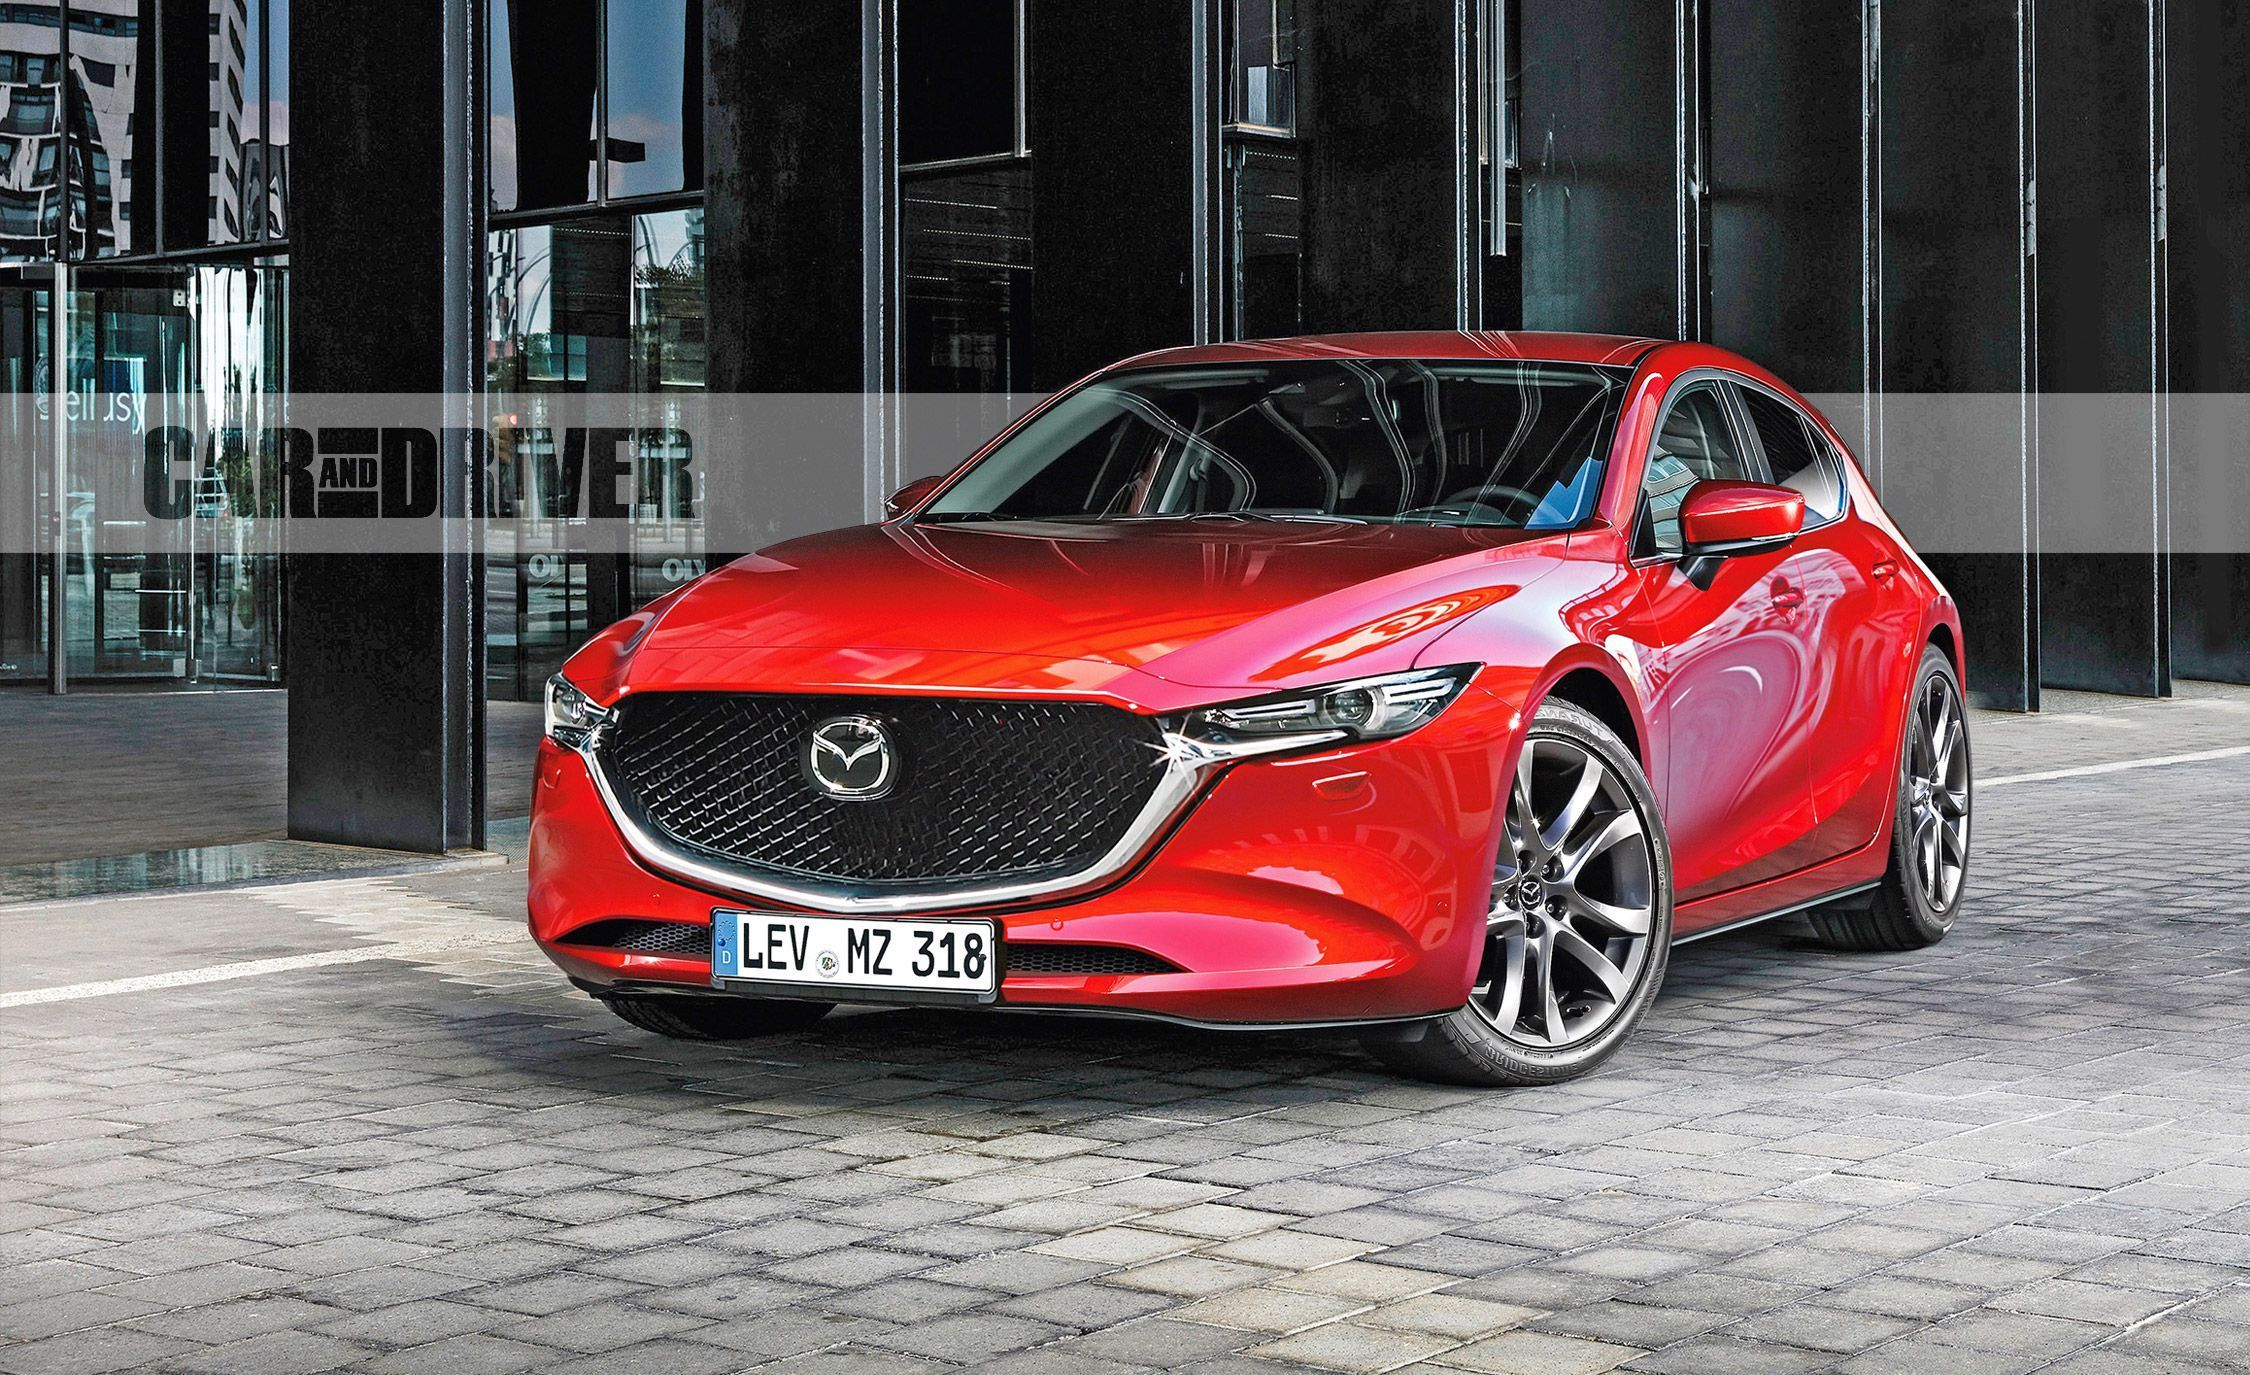 See Models And Pricing As Well As Photos And Videos About 2020 Mazda 3 Sedan We Reviews The 2020 Mazda 3 Sedan Photo Wh Mazda 3 Hatchback Mazda Mazda 3 Sedan